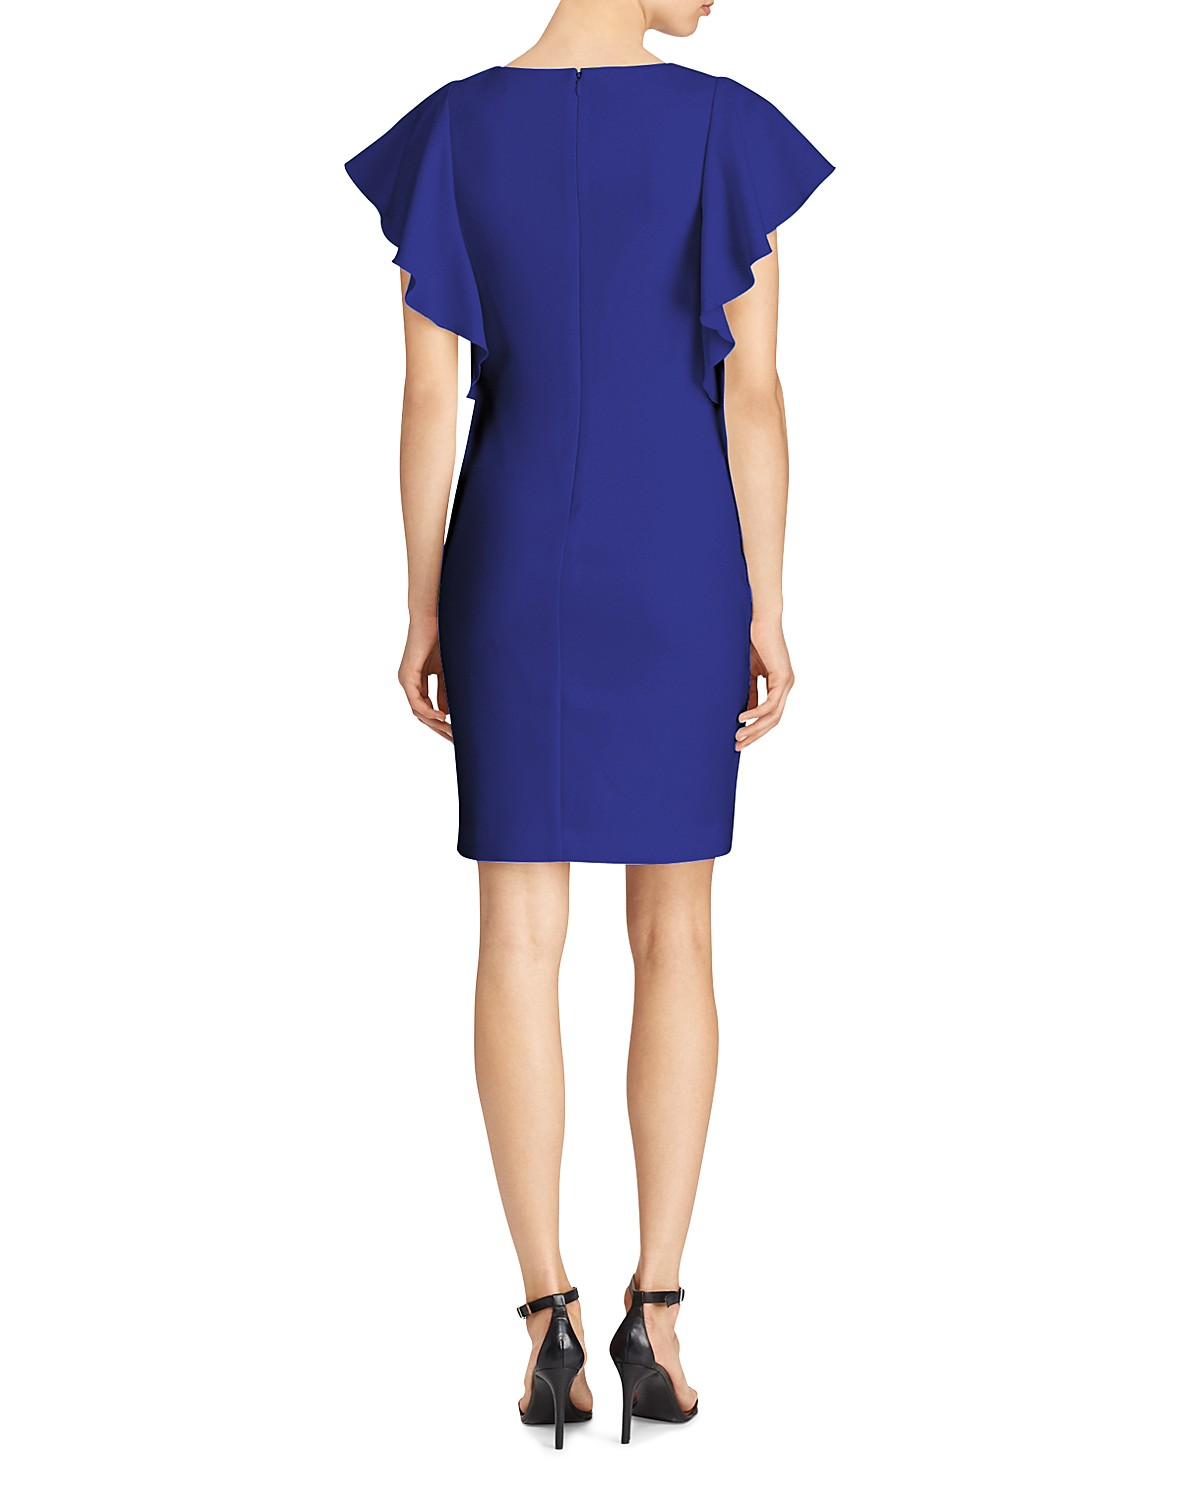 Petite Ave Clothing For Women 54 And Under